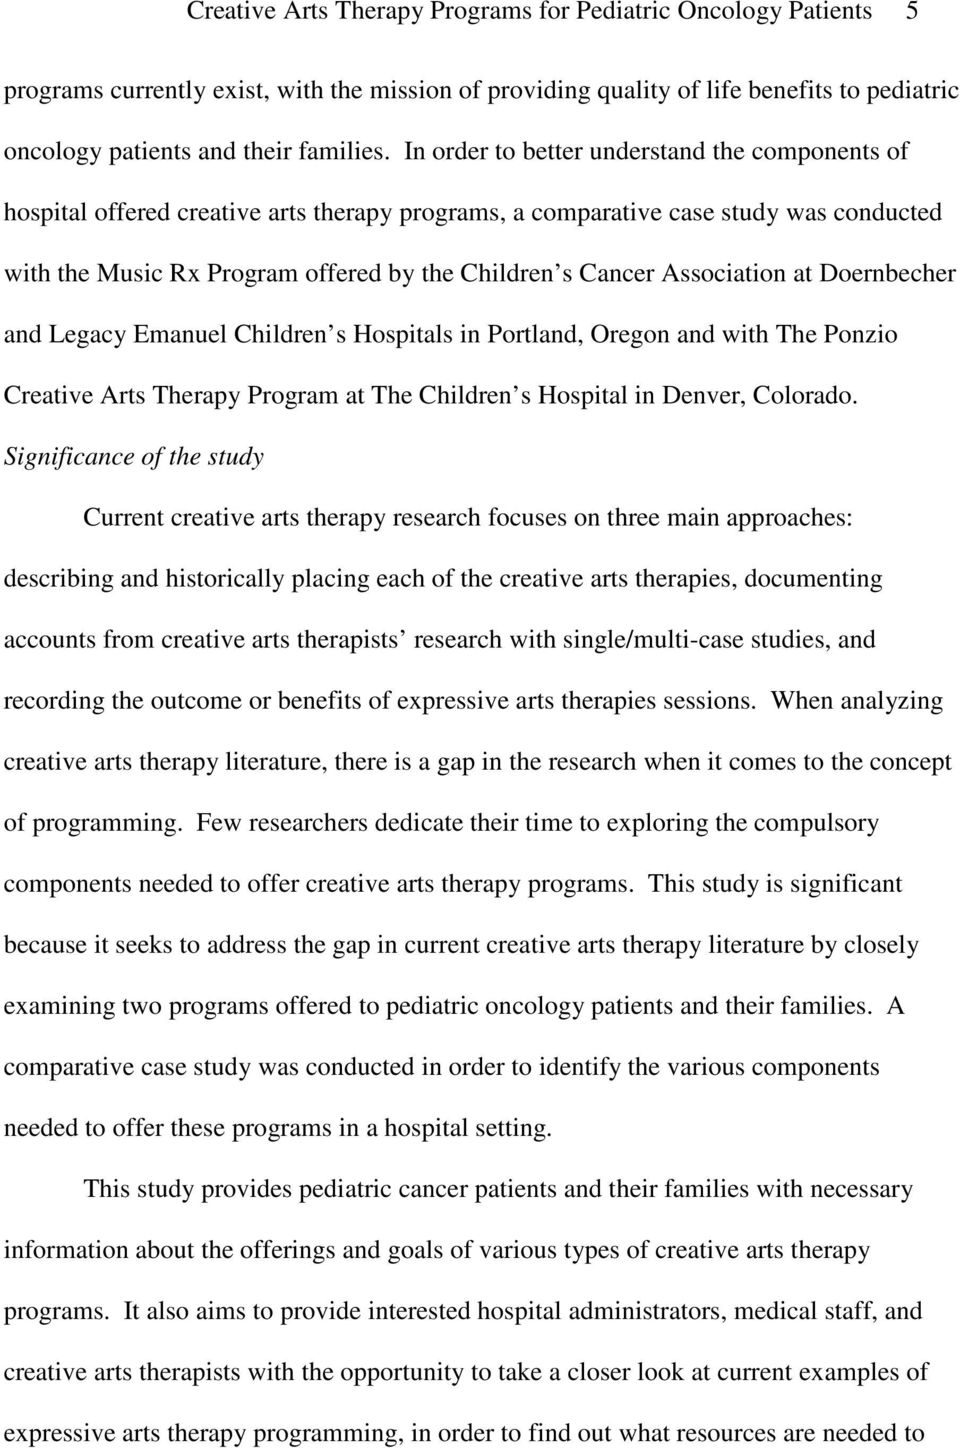 Association at Doernbecher and Legacy Emanuel Children s Hospitals in Portland, Oregon and with The Ponzio Creative Arts Therapy Program at The Children s Hospital in Denver, Colorado.